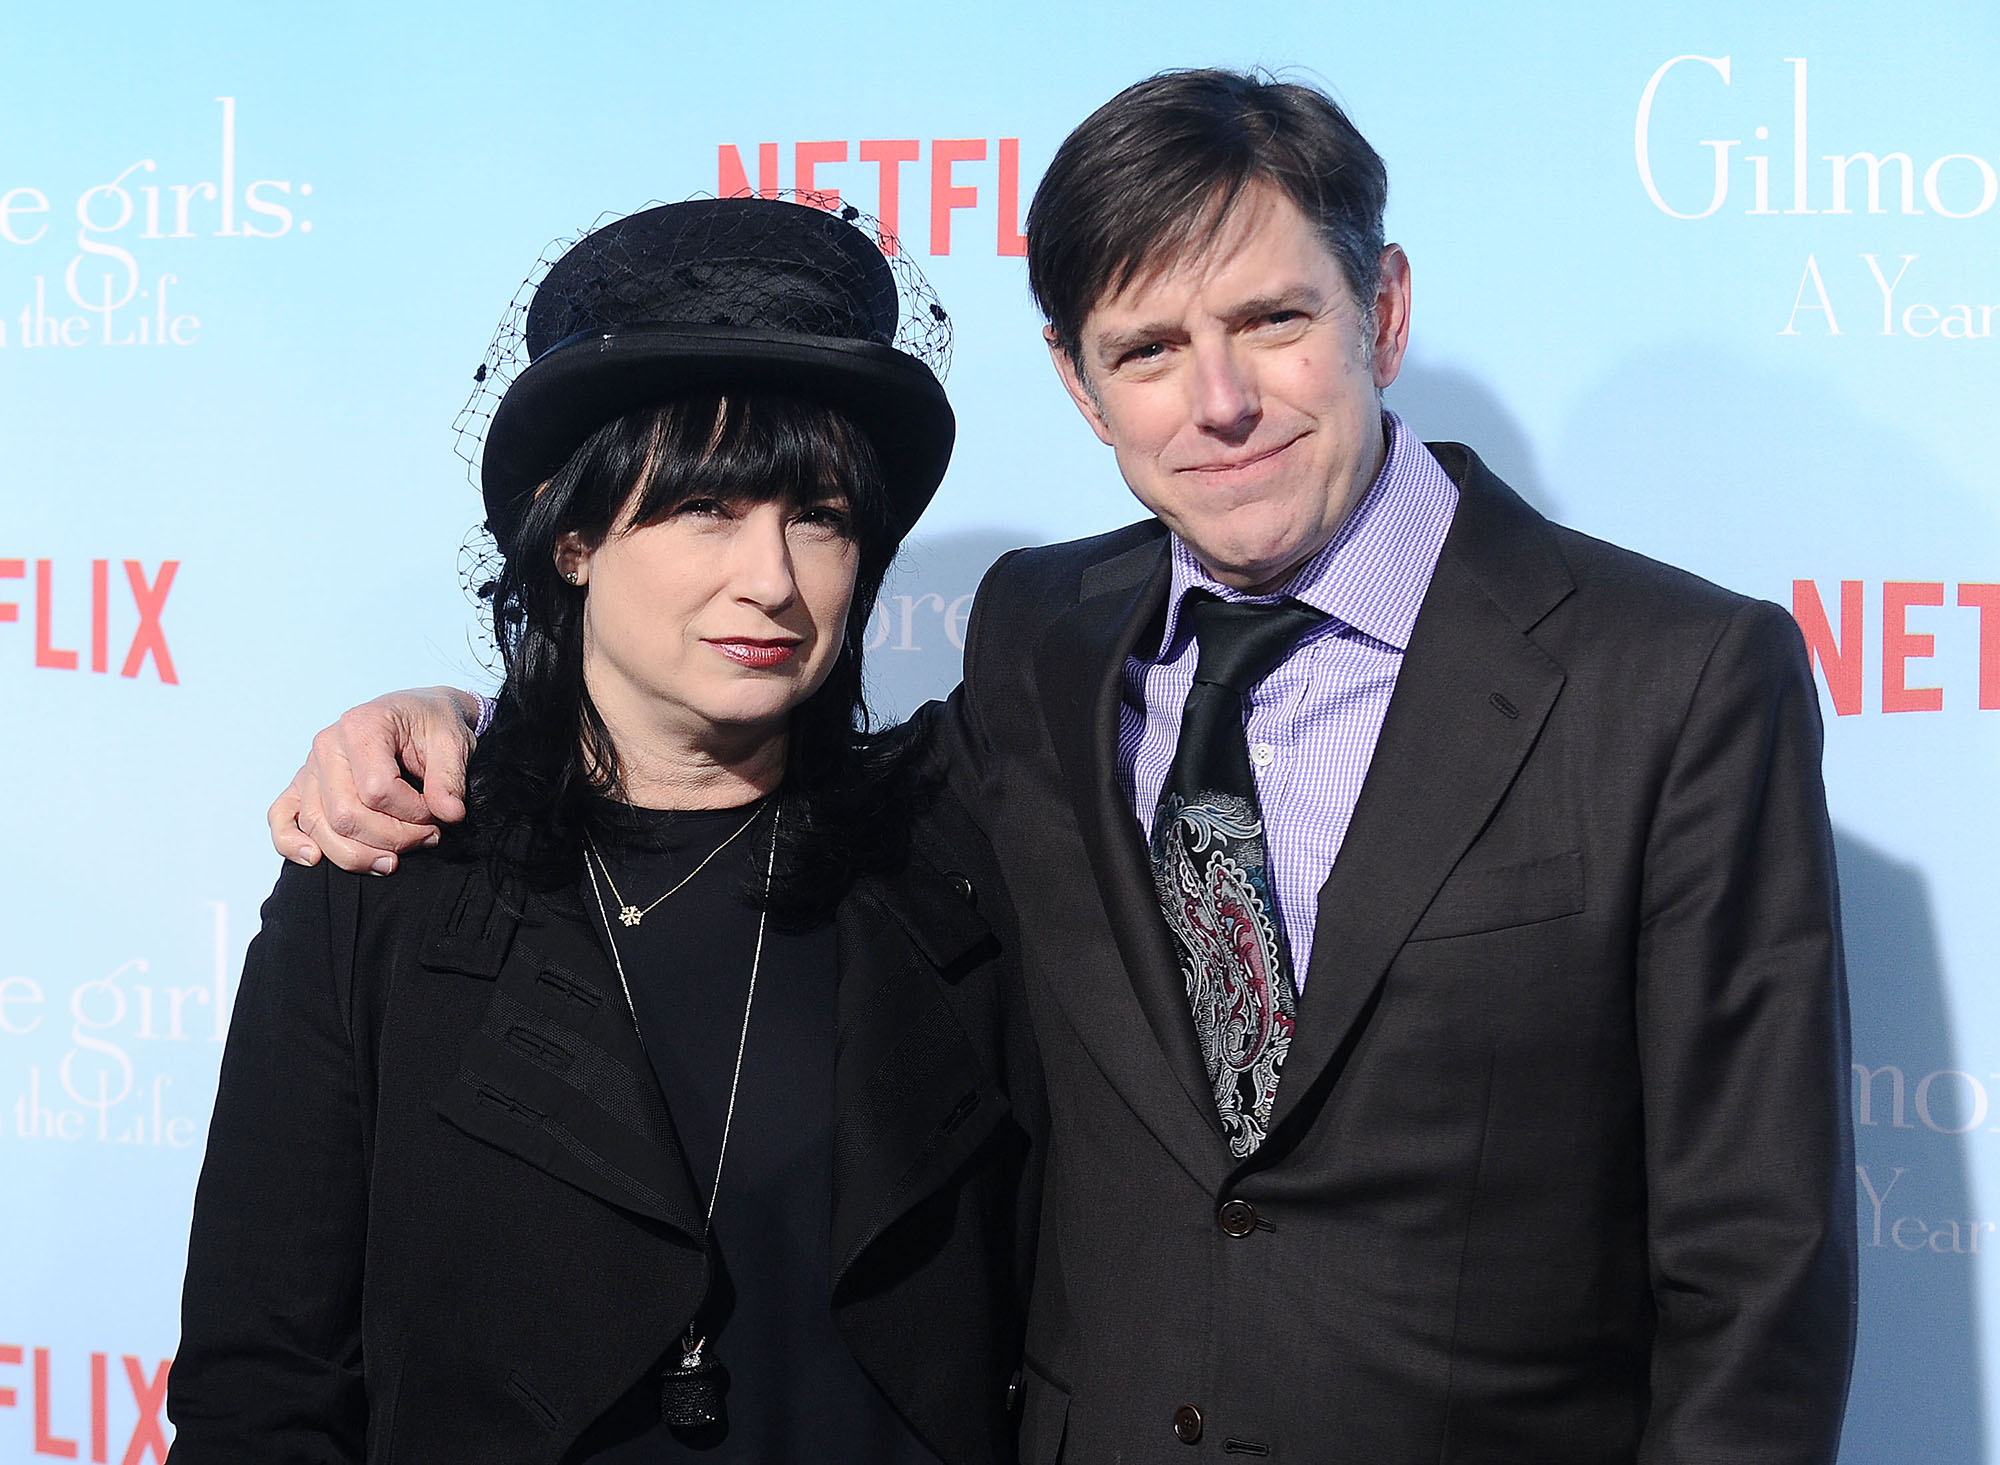 Amy Sherman-Palladino and Daniel Palladino attend the premiere of  Gilmore Girls: A Year in the Life  in Los Angeles, California. (Photo by Jason LaVeris/FilmMagic)